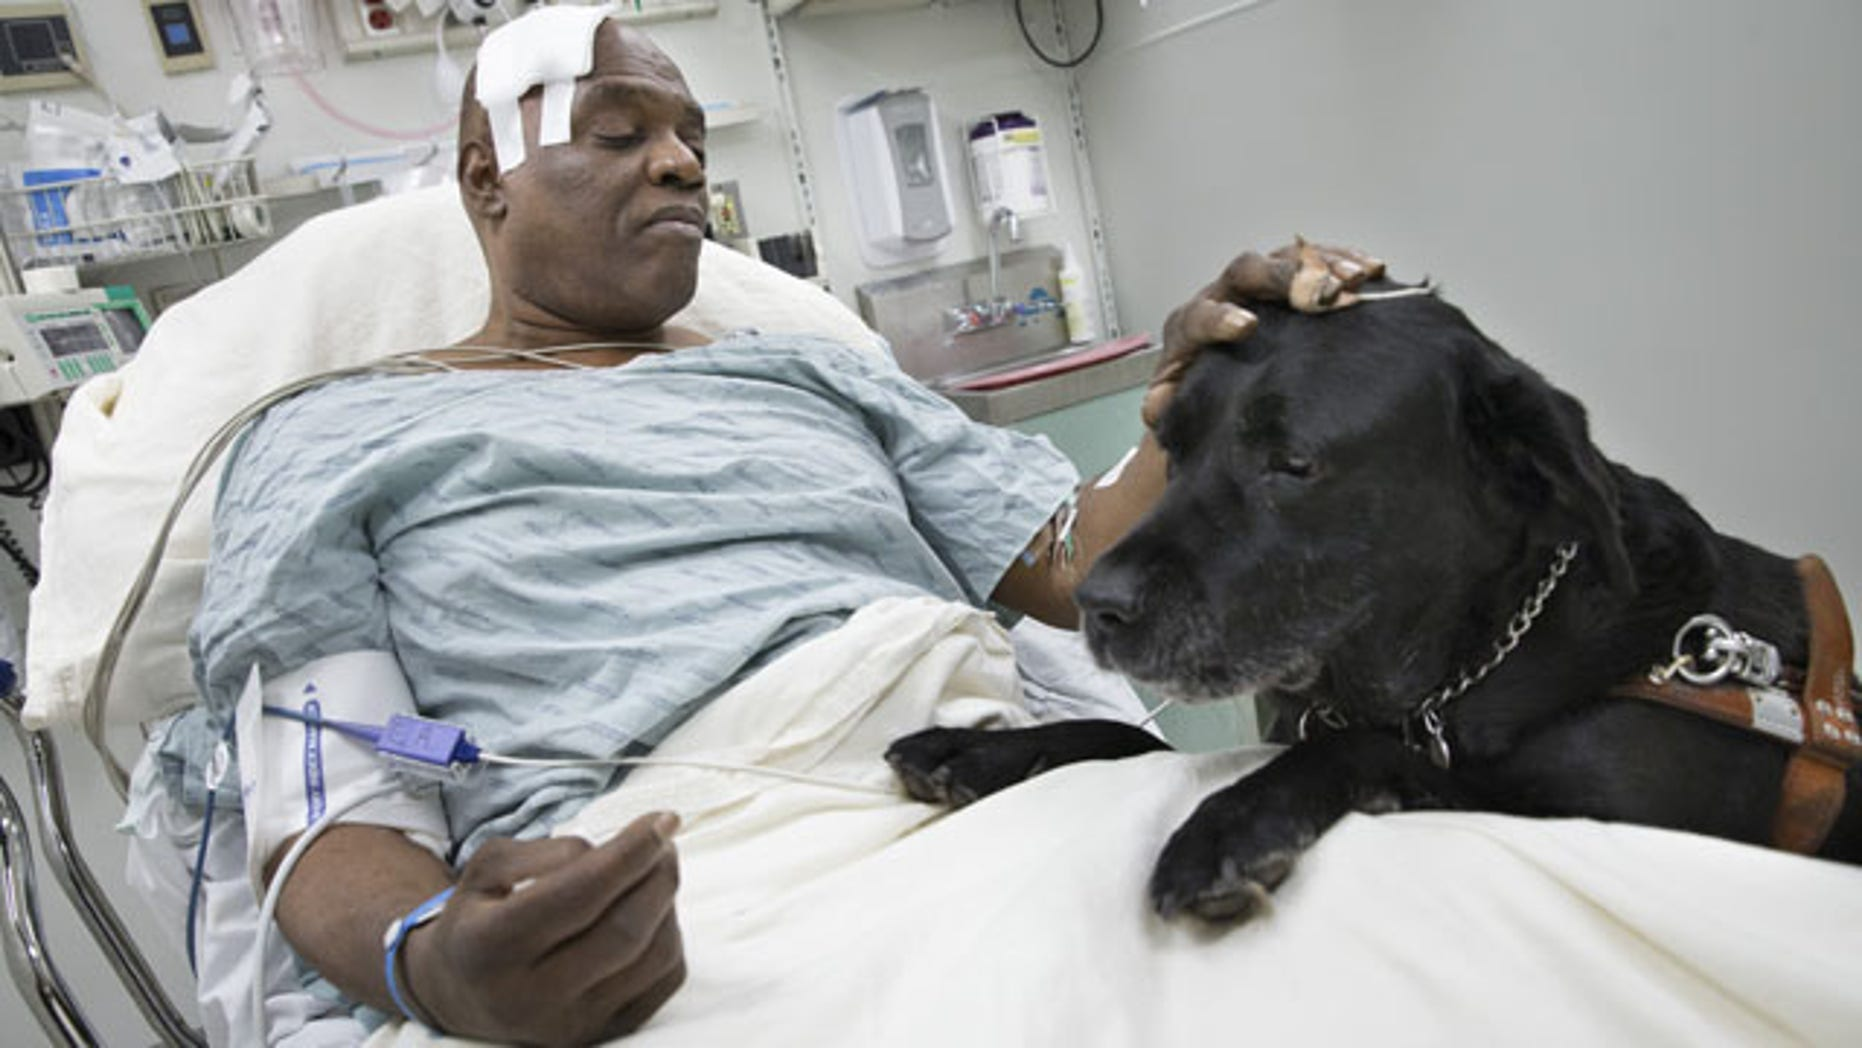 December 17, 2013: Cecil Williams pets his guide dog Orlando in his hospital bed following a fall onto subway tracks from the platform in New York. The blind 61-year-old Williams says he fainted while holding onto his black labrador who tried to save him from falling. Both escaped without serious injury. (AP Photo/John Minchillo)